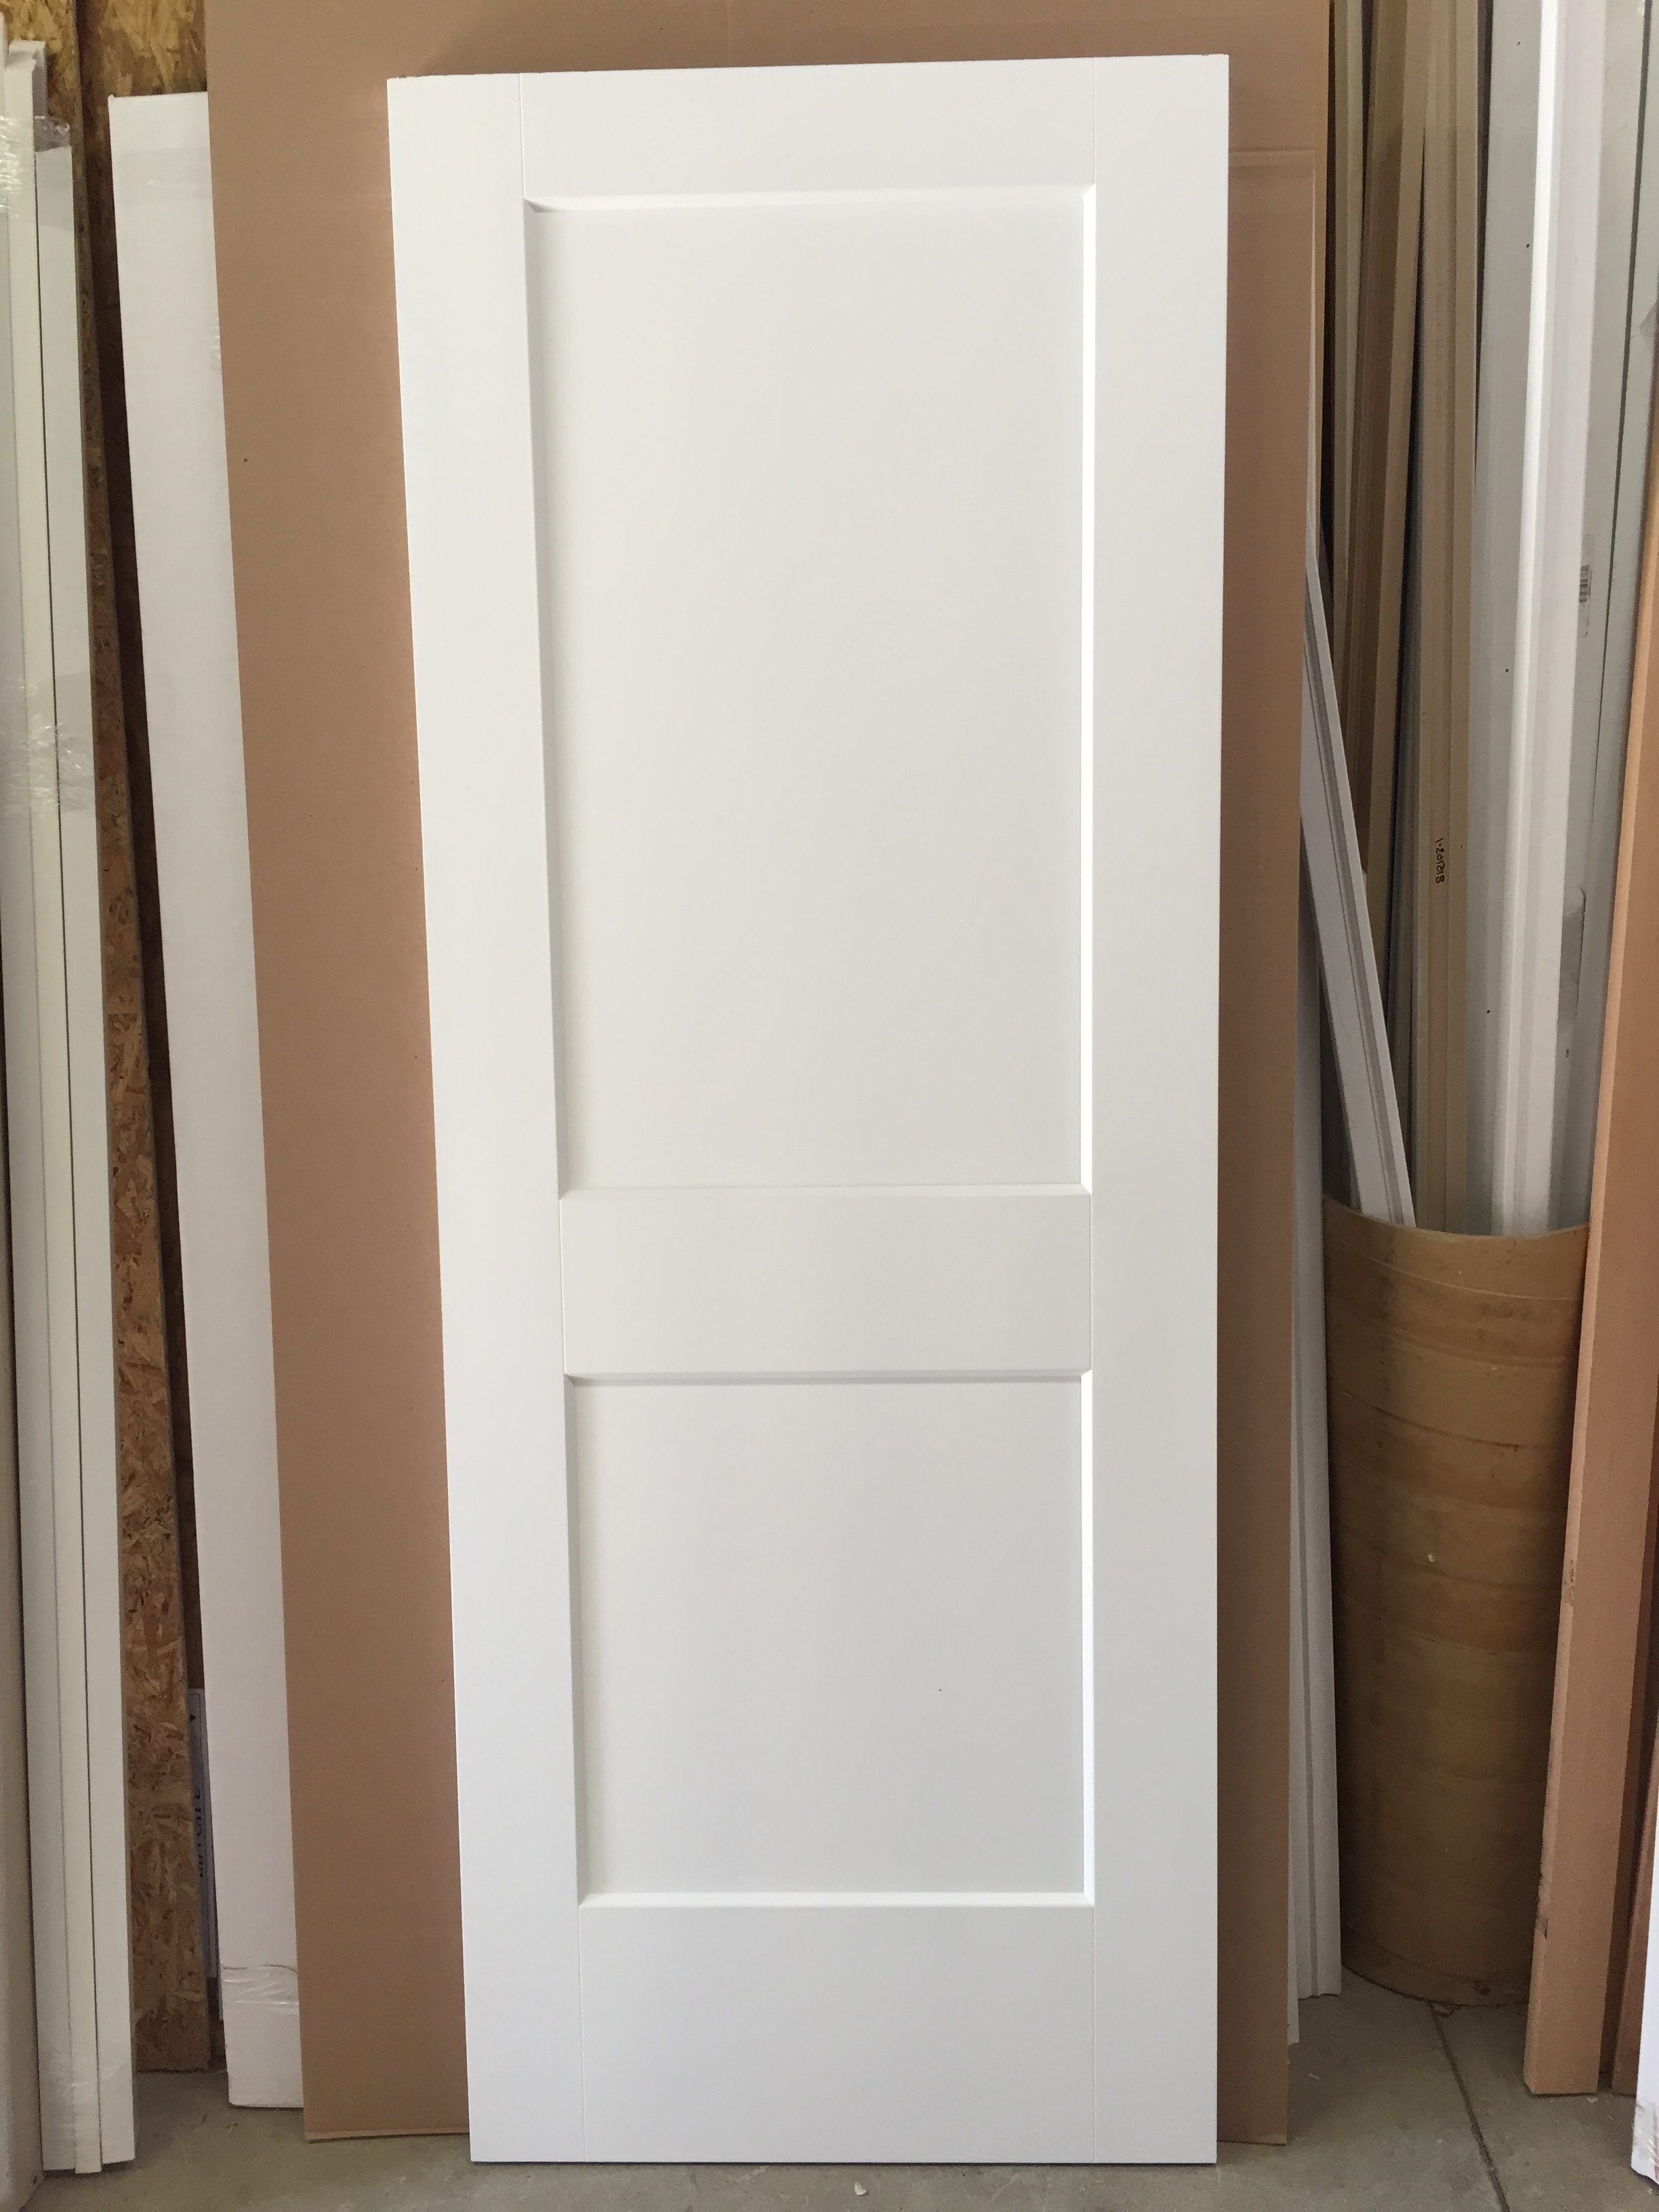 White masonite door swing before installing